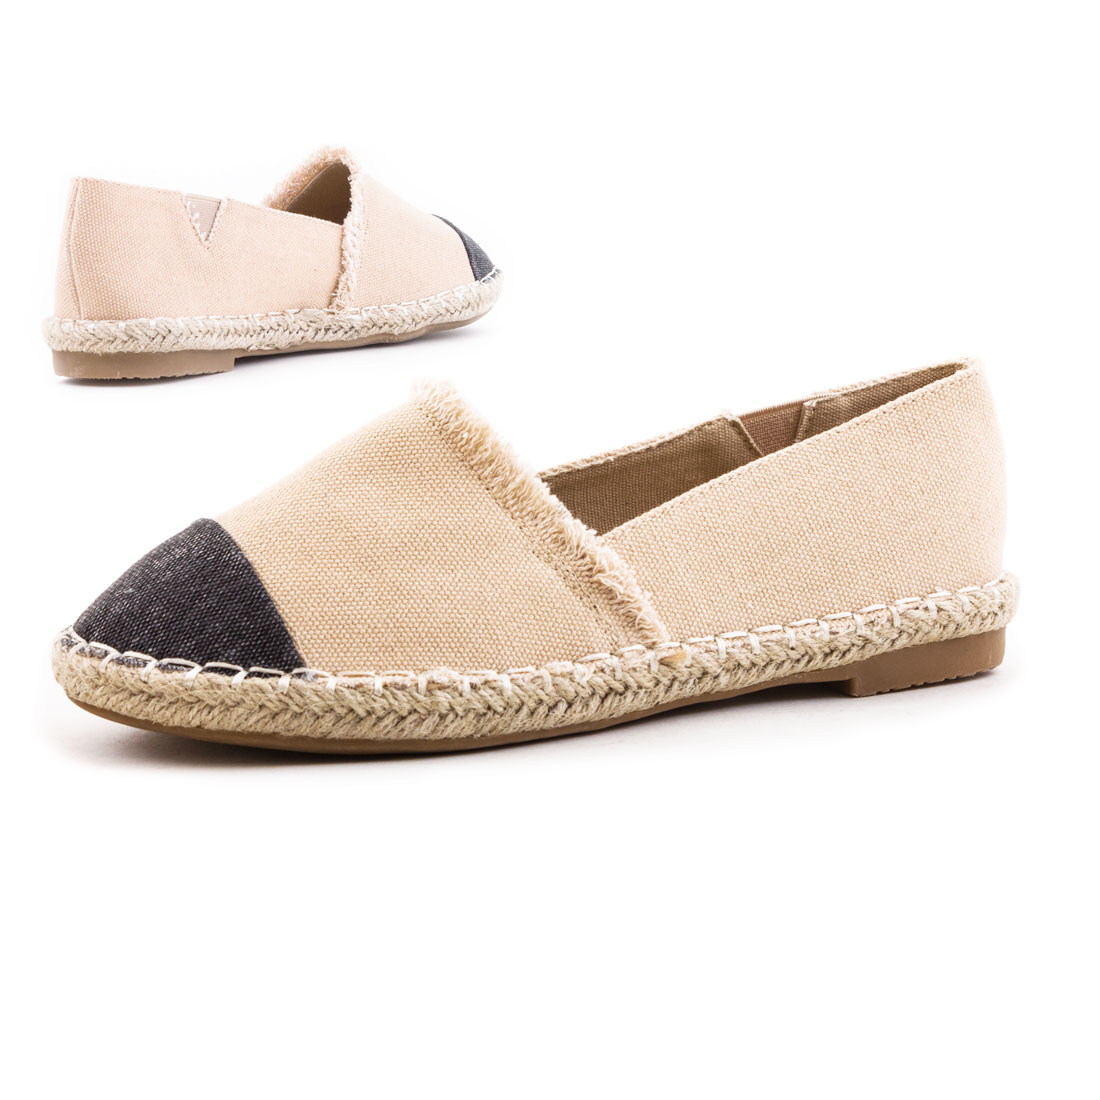 neu damen espadrilles leichte sommer slipper schuhe bast gr 36 37 38 39 40 41 ebay. Black Bedroom Furniture Sets. Home Design Ideas